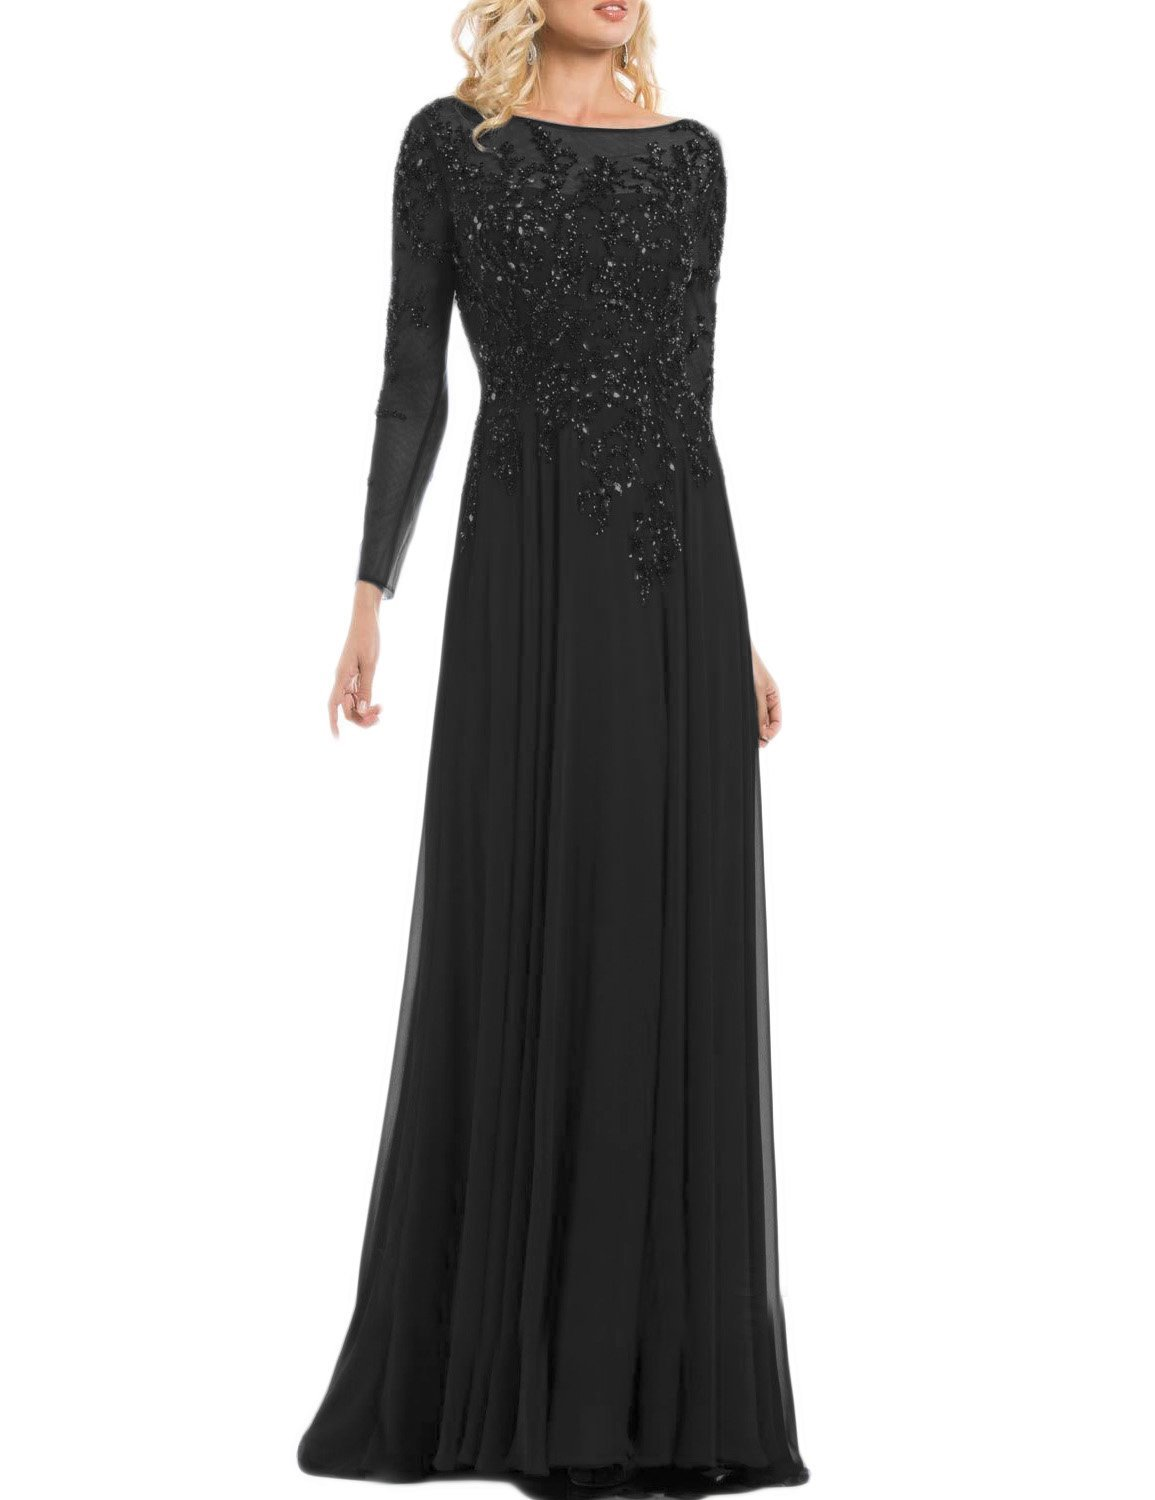 f0b25971ca40 LMBRIDAL Women's Long Sequin Chiffon Evening Dress Scoop Neck Formal Gown  Black 26W